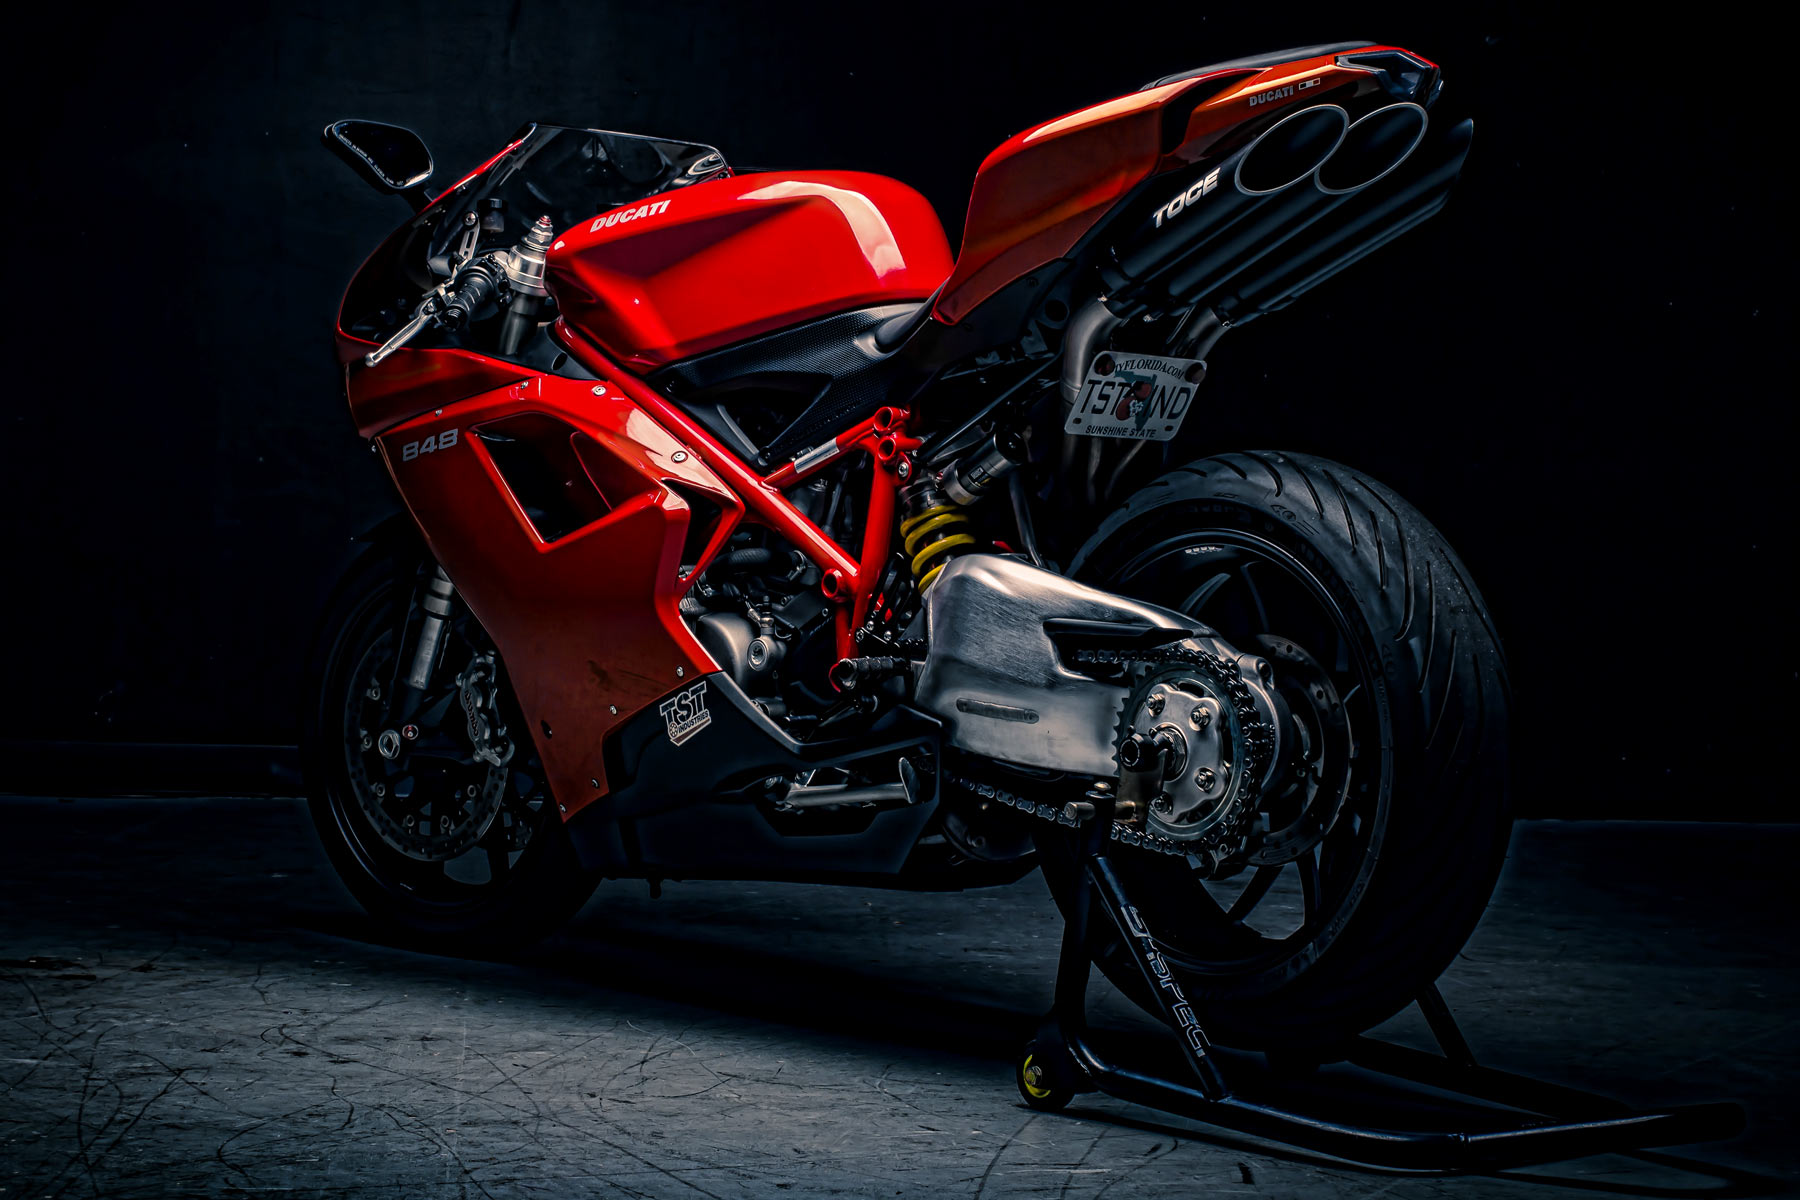 Professional photoshoot of a Ducati 848 performed by TST's own Director of Photography, Marc-Anthony Brown.